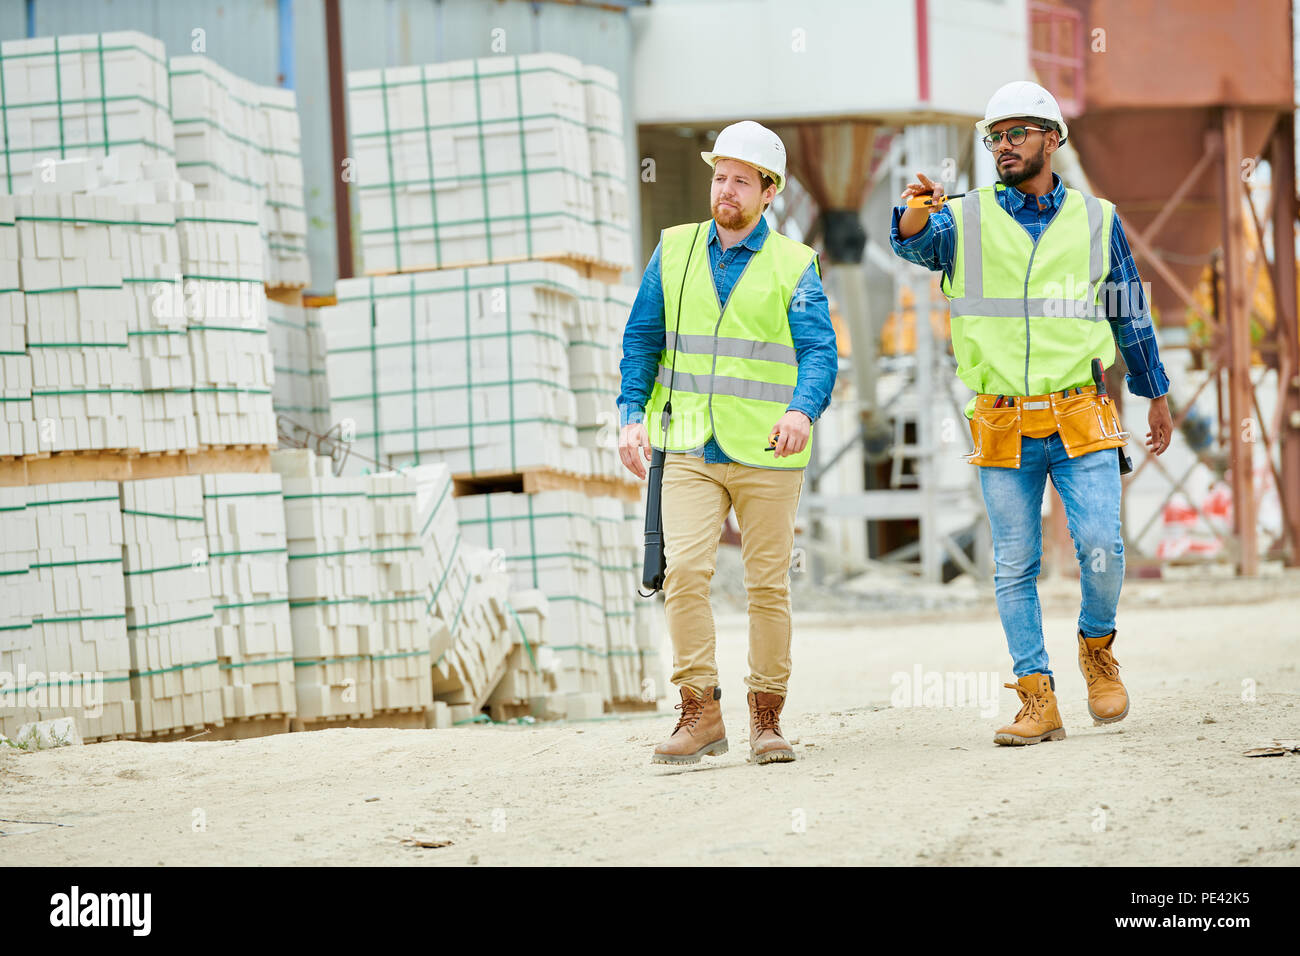 Building inspectors walking on construction site - Stock Image